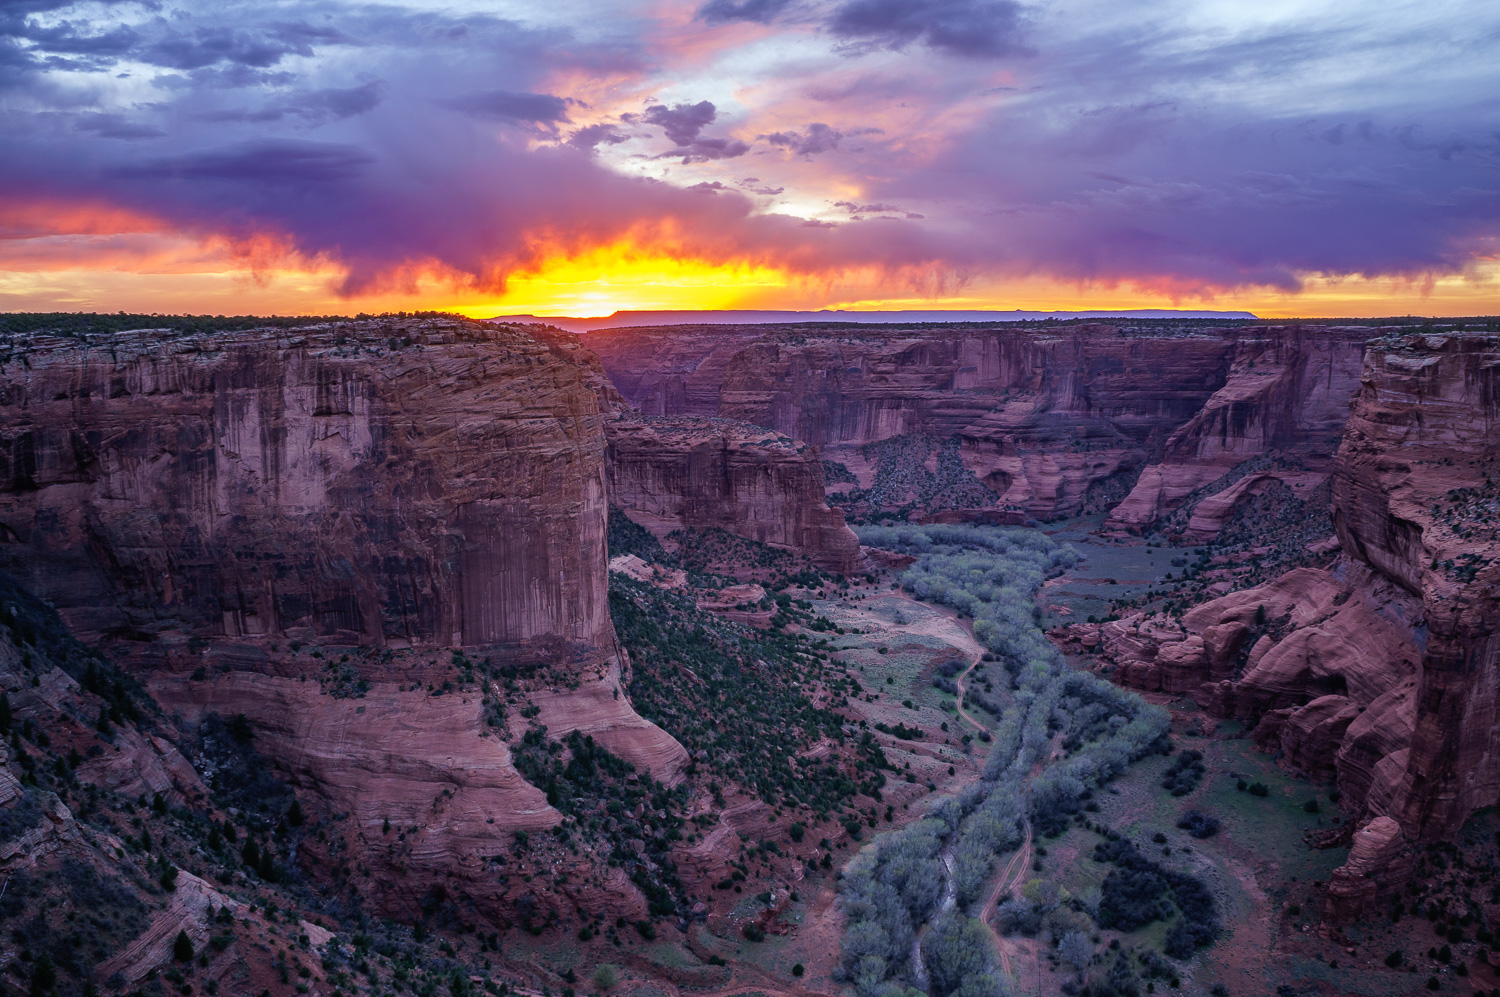 sunset over Canyon de Chelly, Arizona - 10 Dos and Don'ts for Mastering Your Tripod